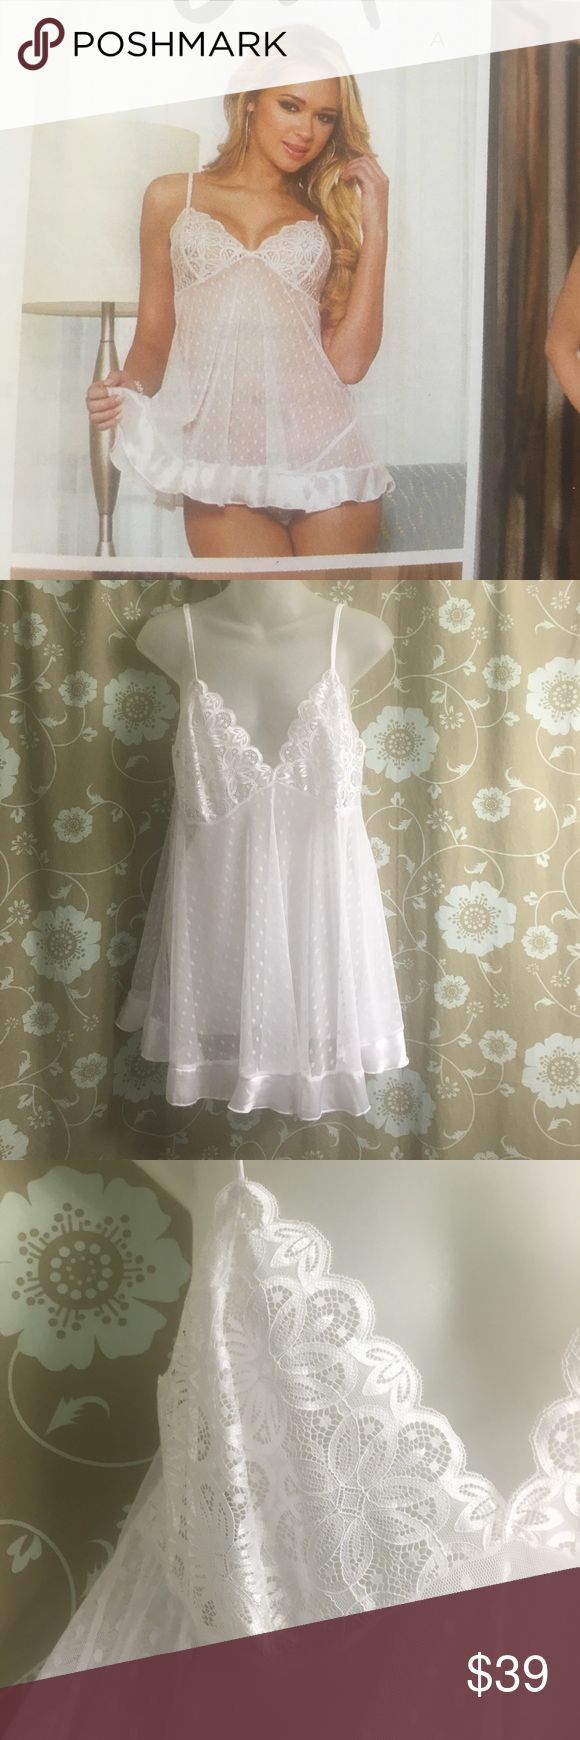 Bridal New White babydoll lingerie, matching thong Adorable soft lace babydoll with trim. Matching thong attached. Perfect for bride to be. New! Dreamgirls brand from Pure Romance. Former consultant trying to move stock. 2x shown, also available in small. Adjustable straps. dreamgirls Other